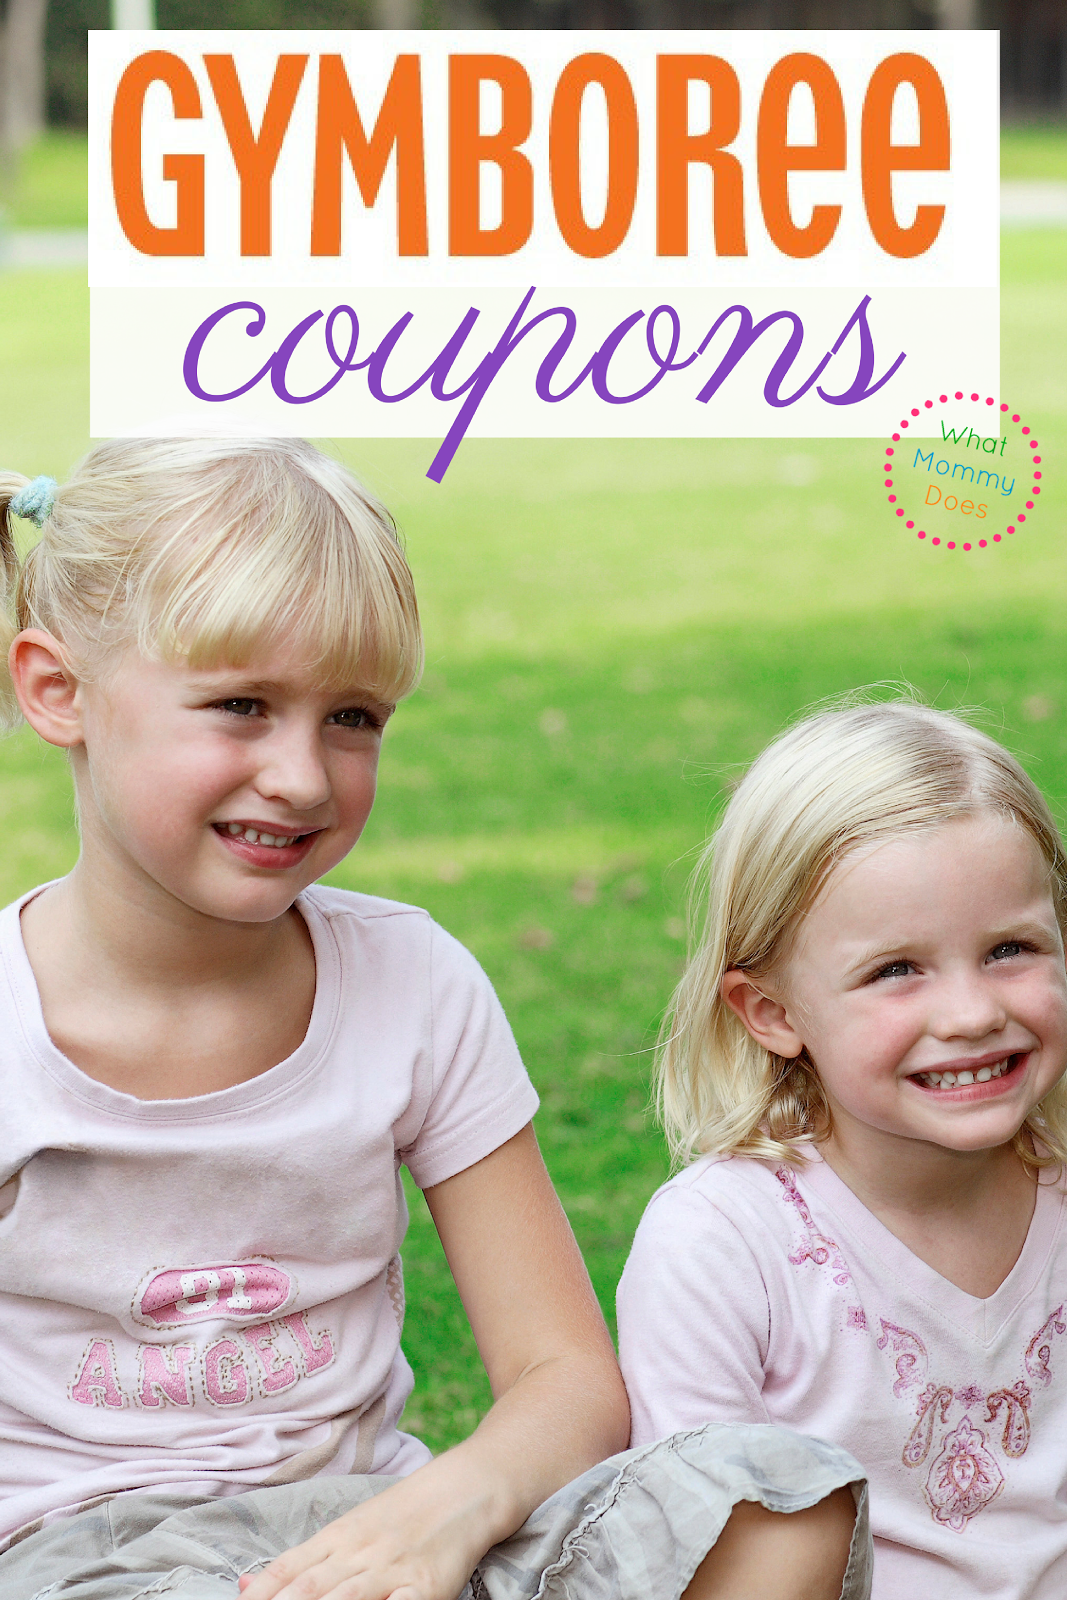 Never pay full price for cute kids clothes! Use a Gymboree Coupon to keep your kids fashionable and save money!